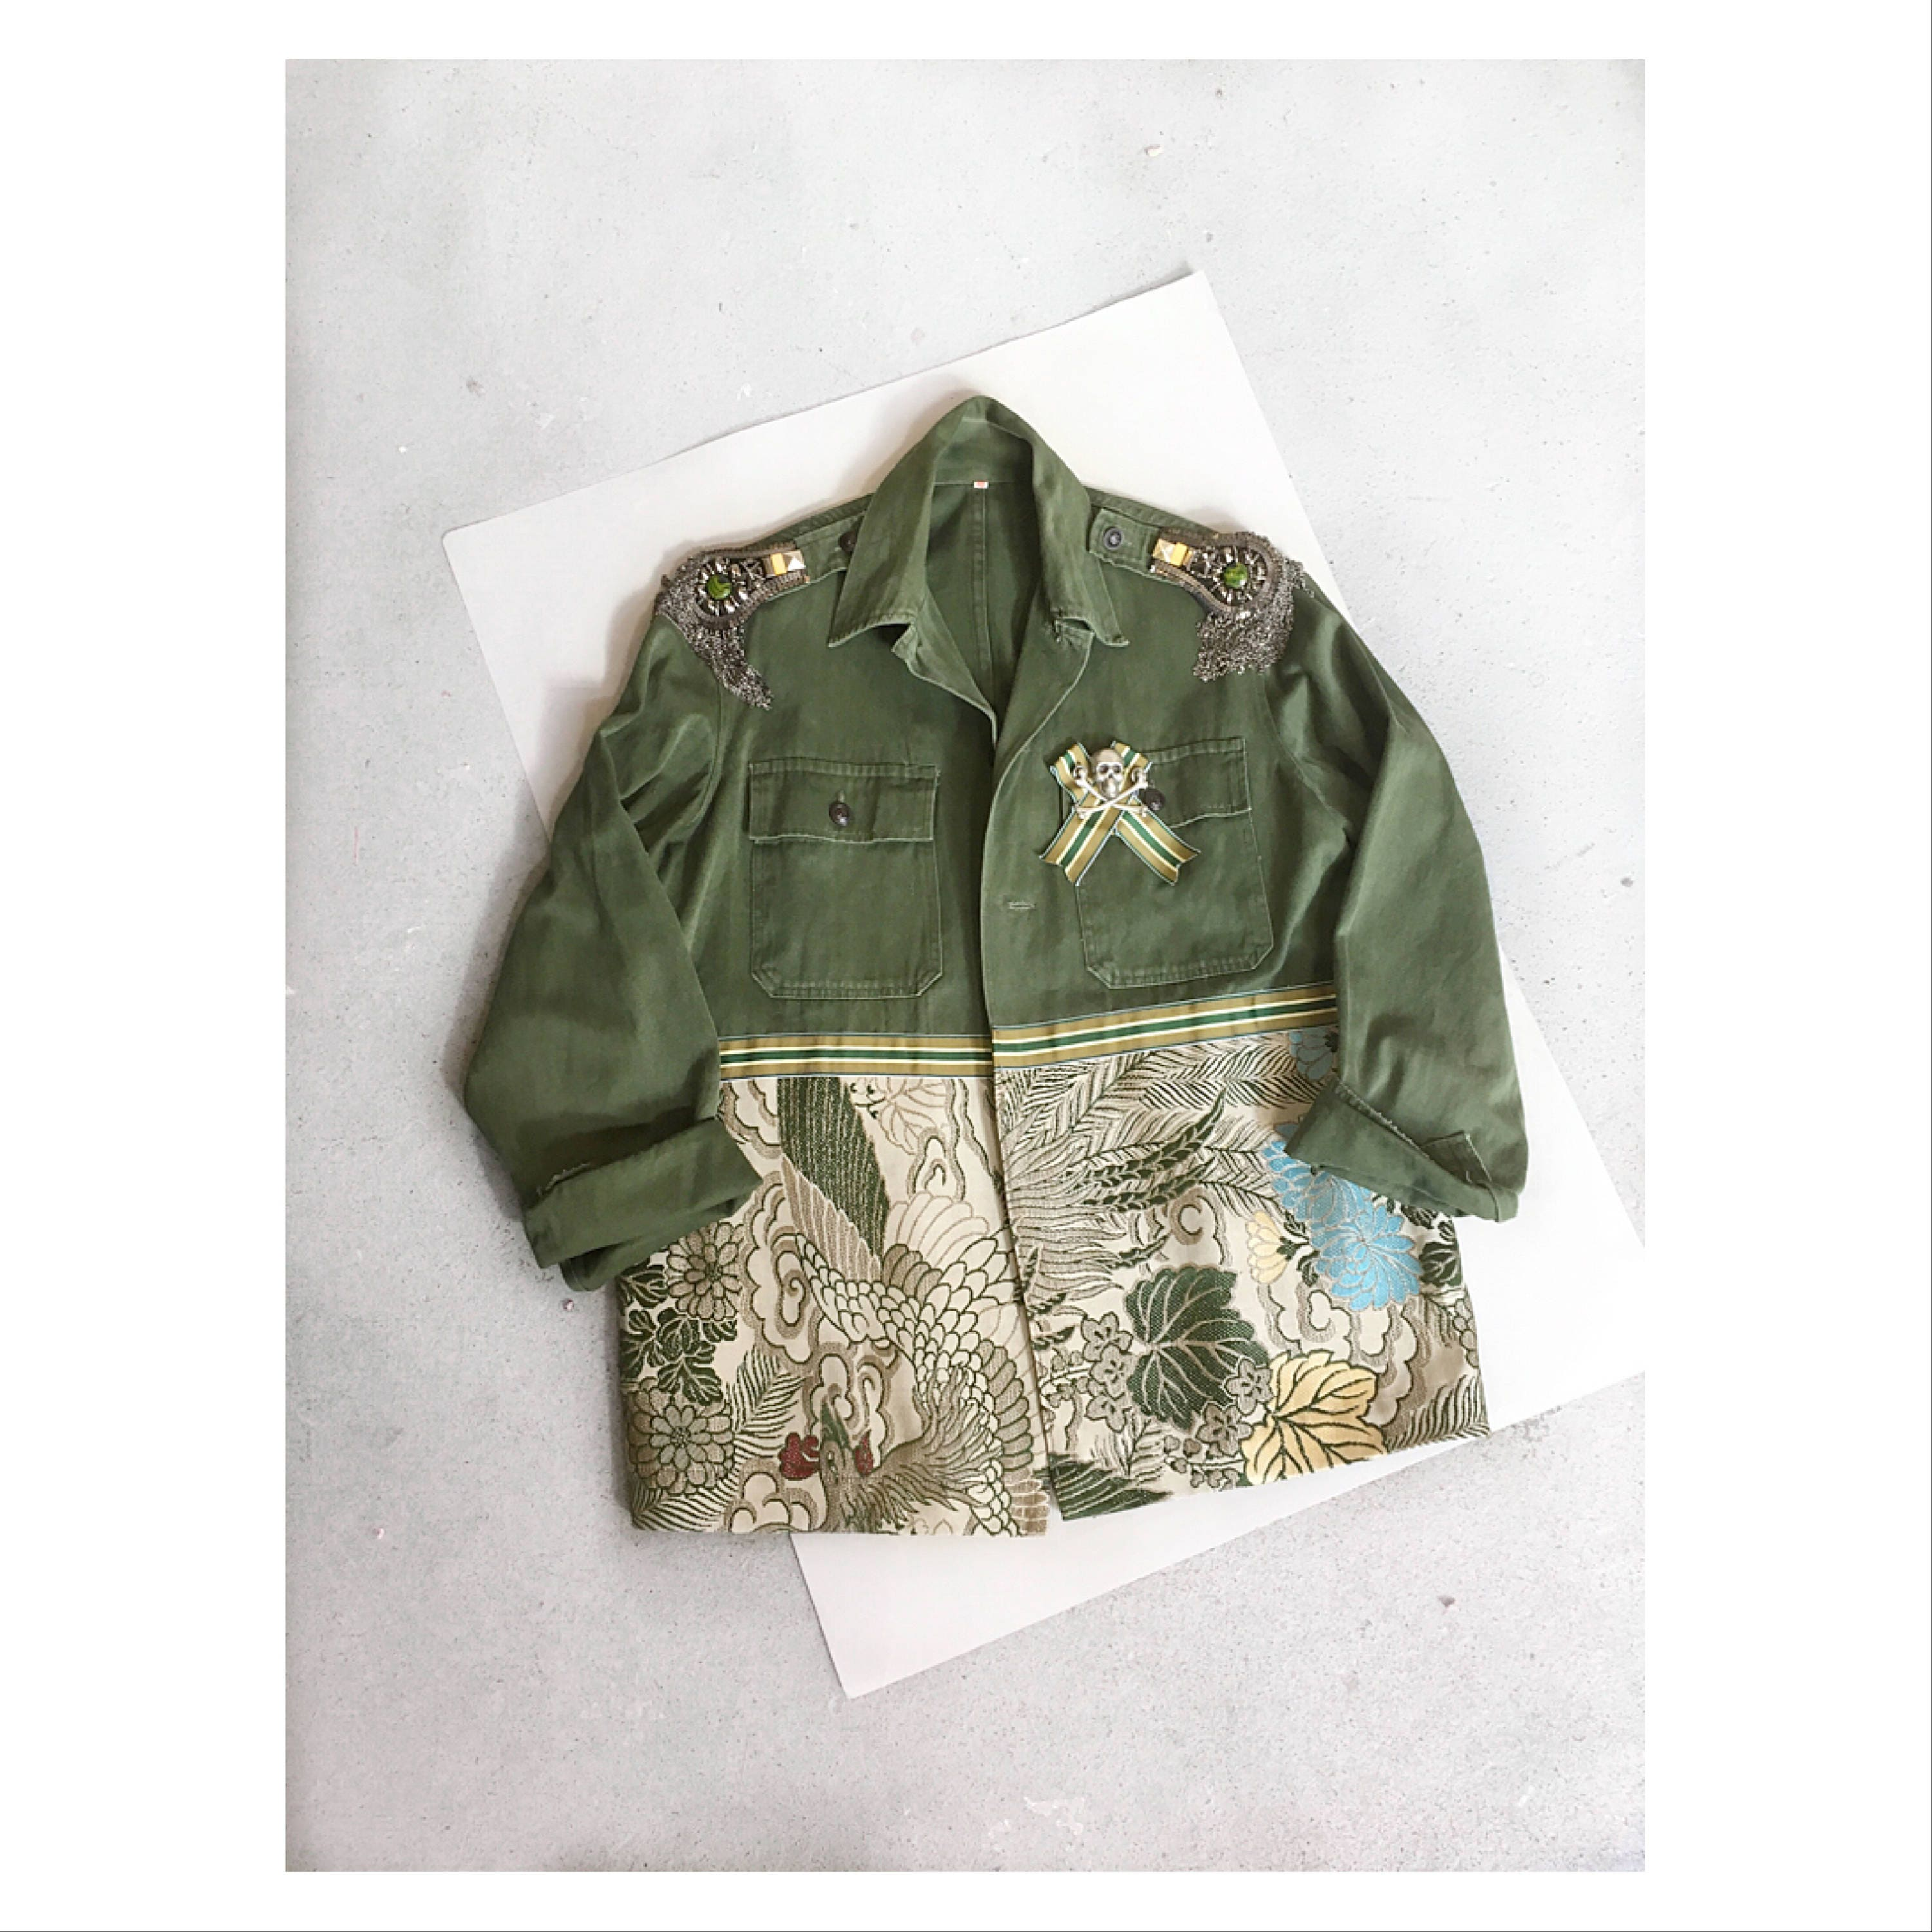 Geishacustomised army fashion jacket. Khaki jacket